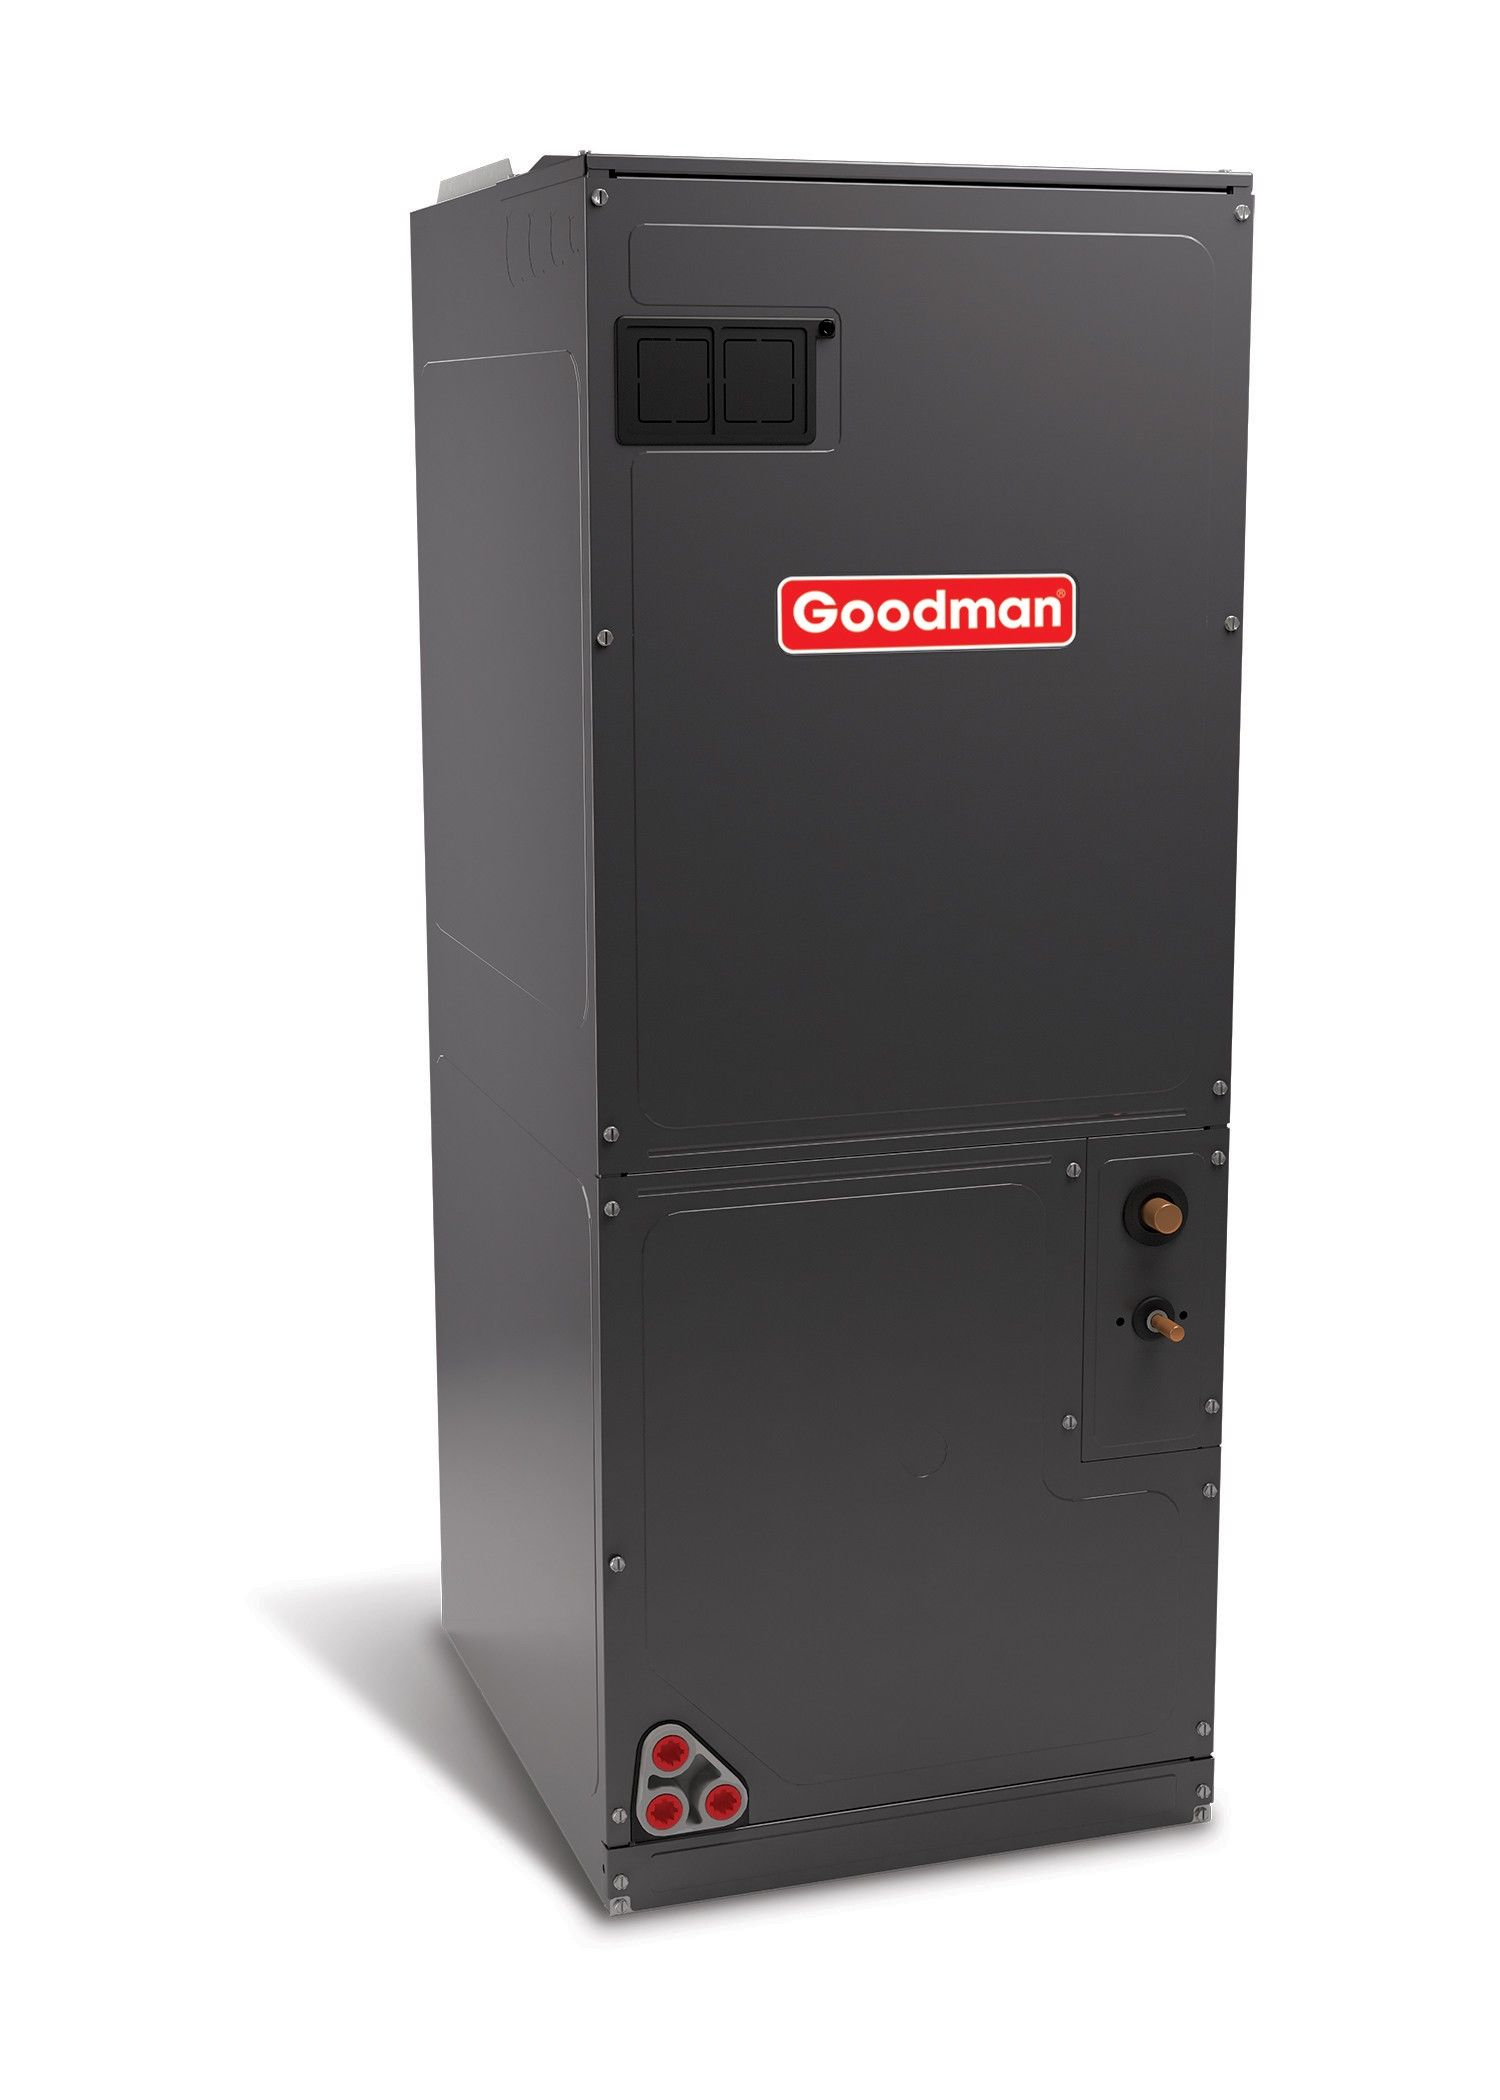 3.0 Ton Goodman AVPTC Variable Speed Air Handler